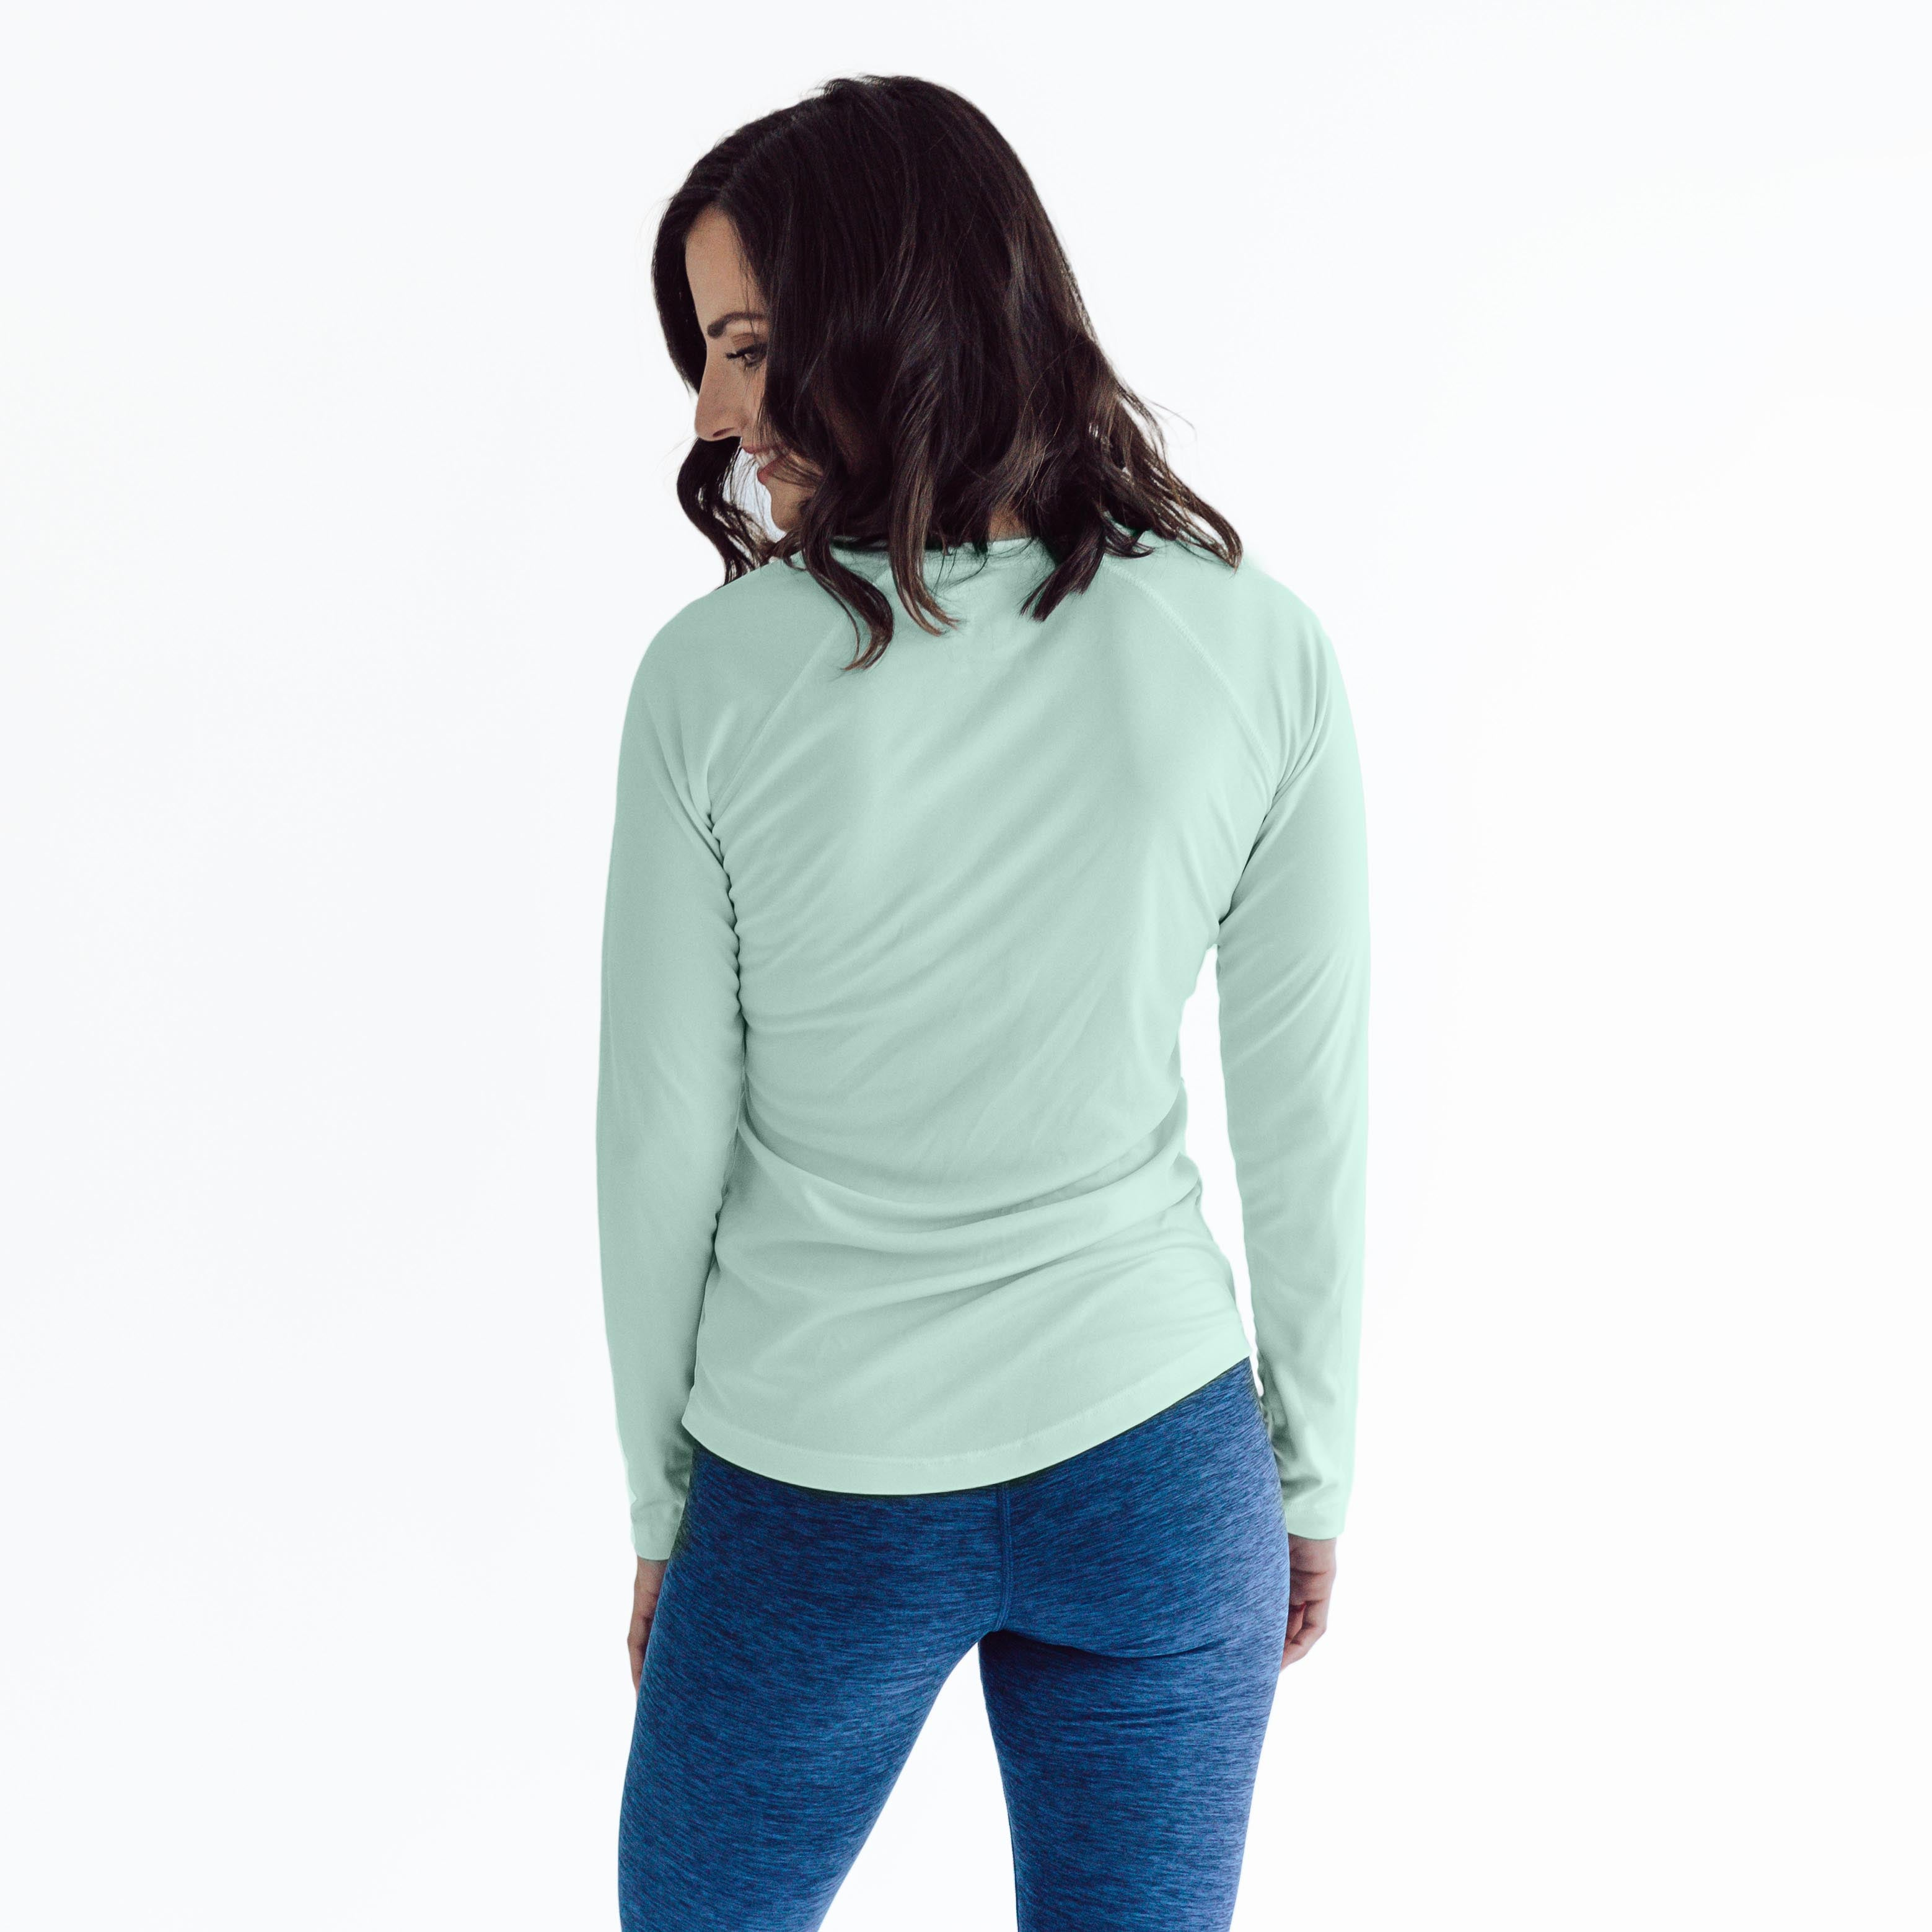 W850SG Ladies Classic Fit Solar Long Sleeve - Seagrass